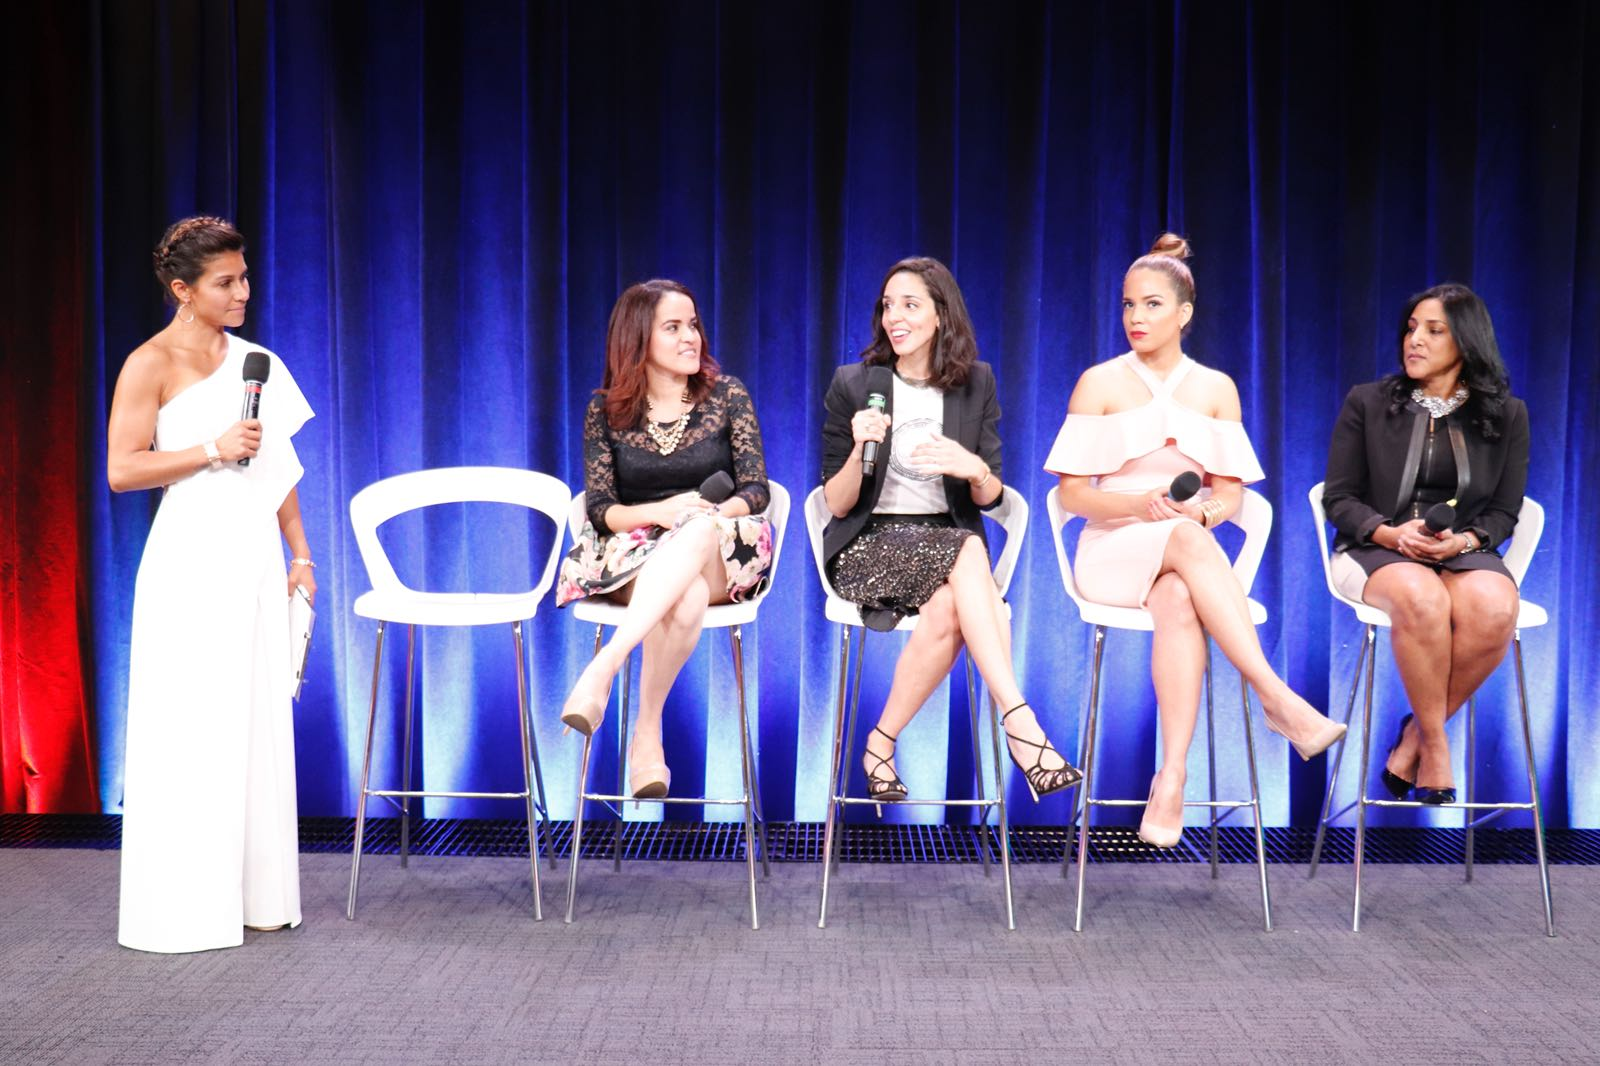 Around Eco founder Jenn Velez talking at Google panel discussion in NYC as part of Latinas En New York